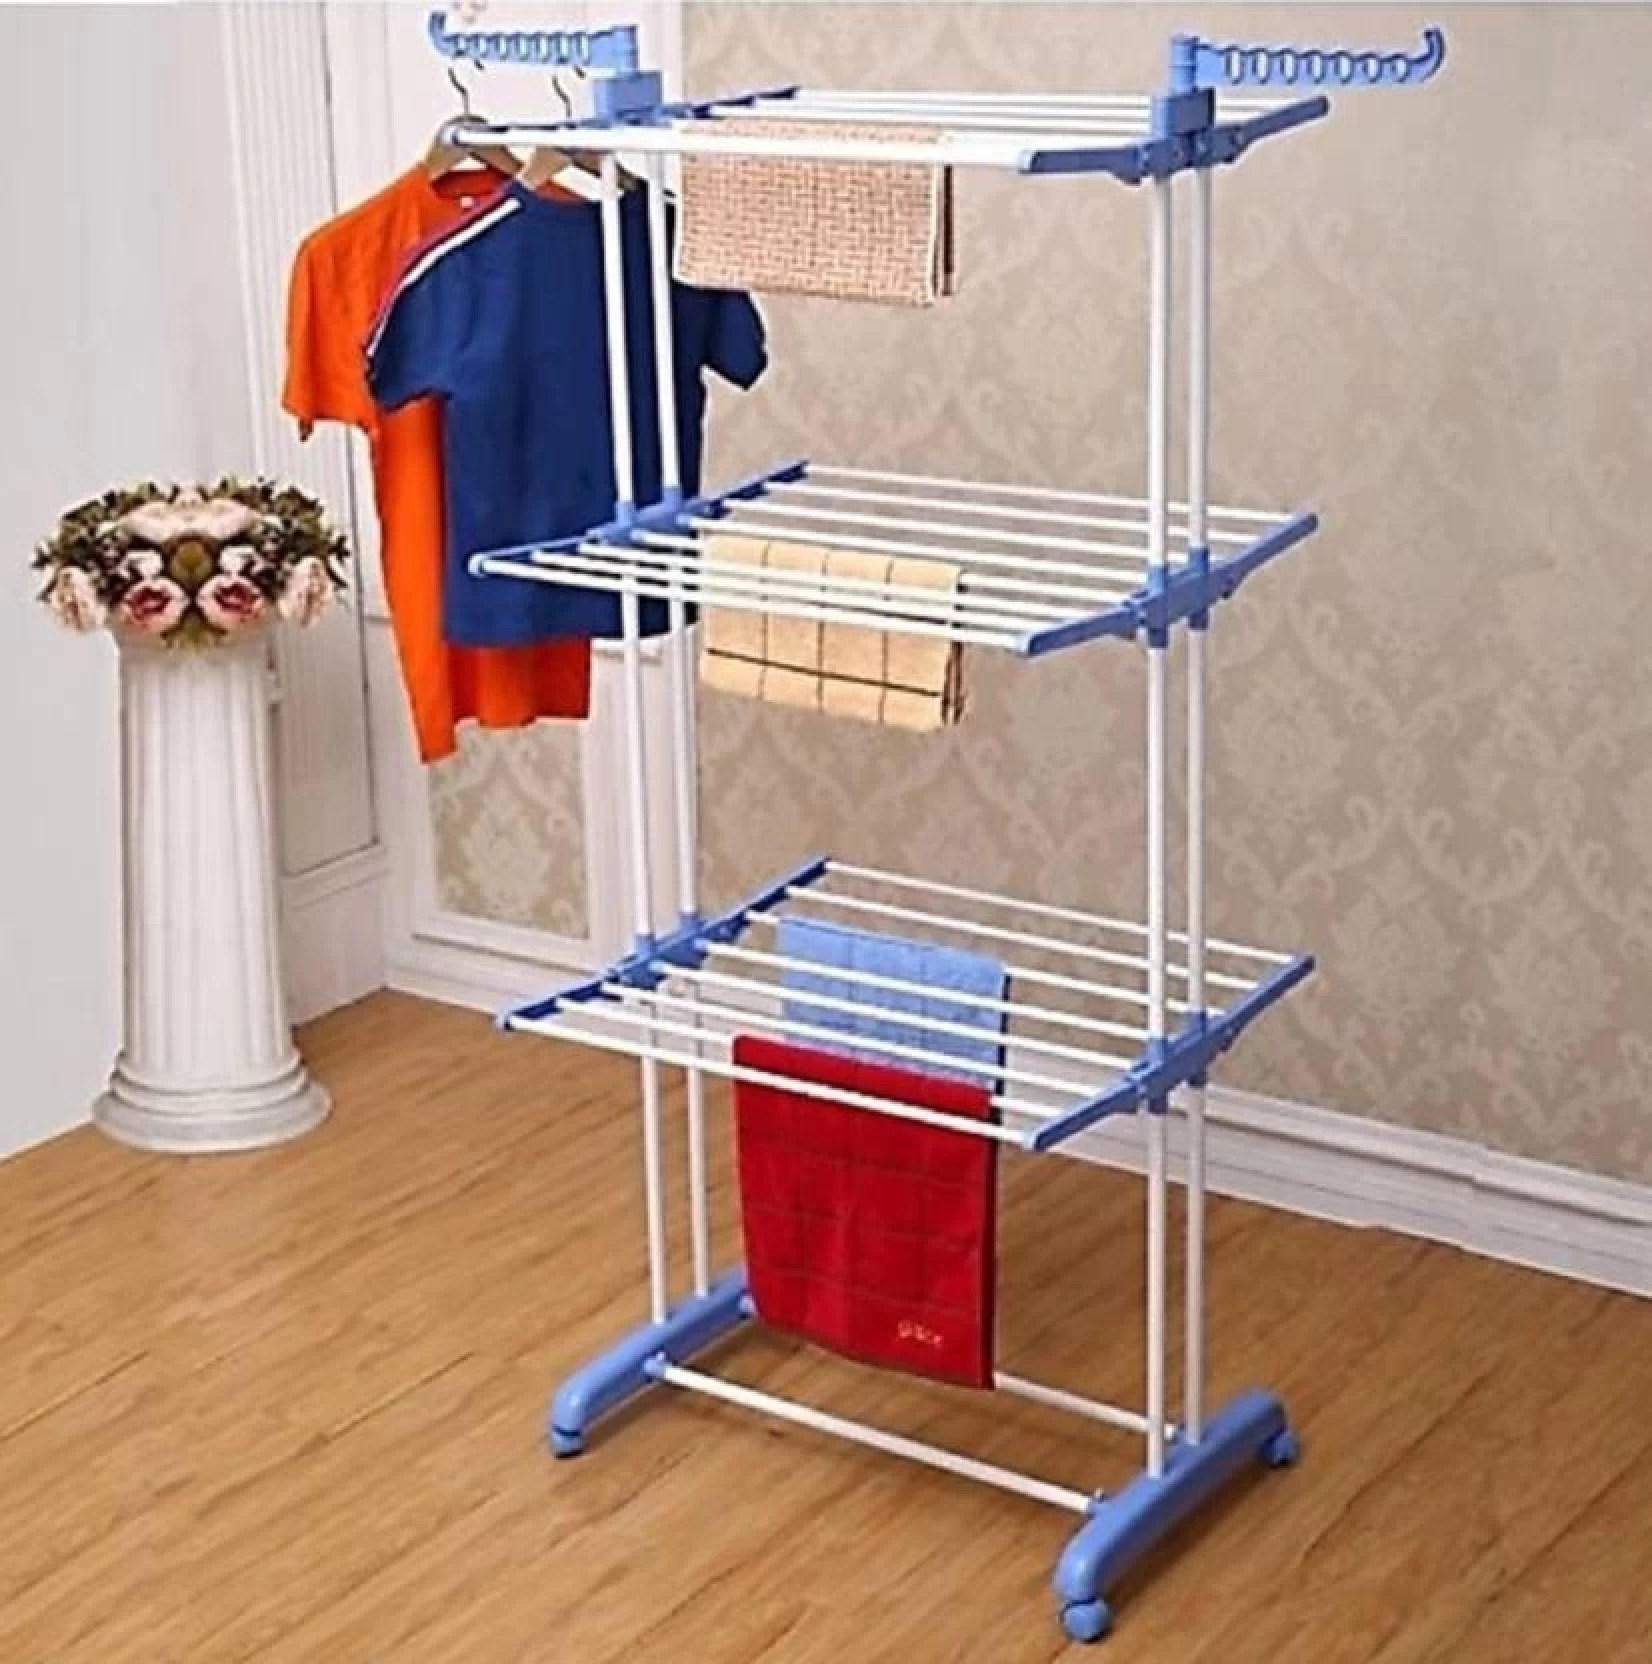 Cloth Hanger Stand Best 4u Premium Quality 3 Layer Clothes Rack Hanger Stainless Steel Floor Cloth Dryer Stand